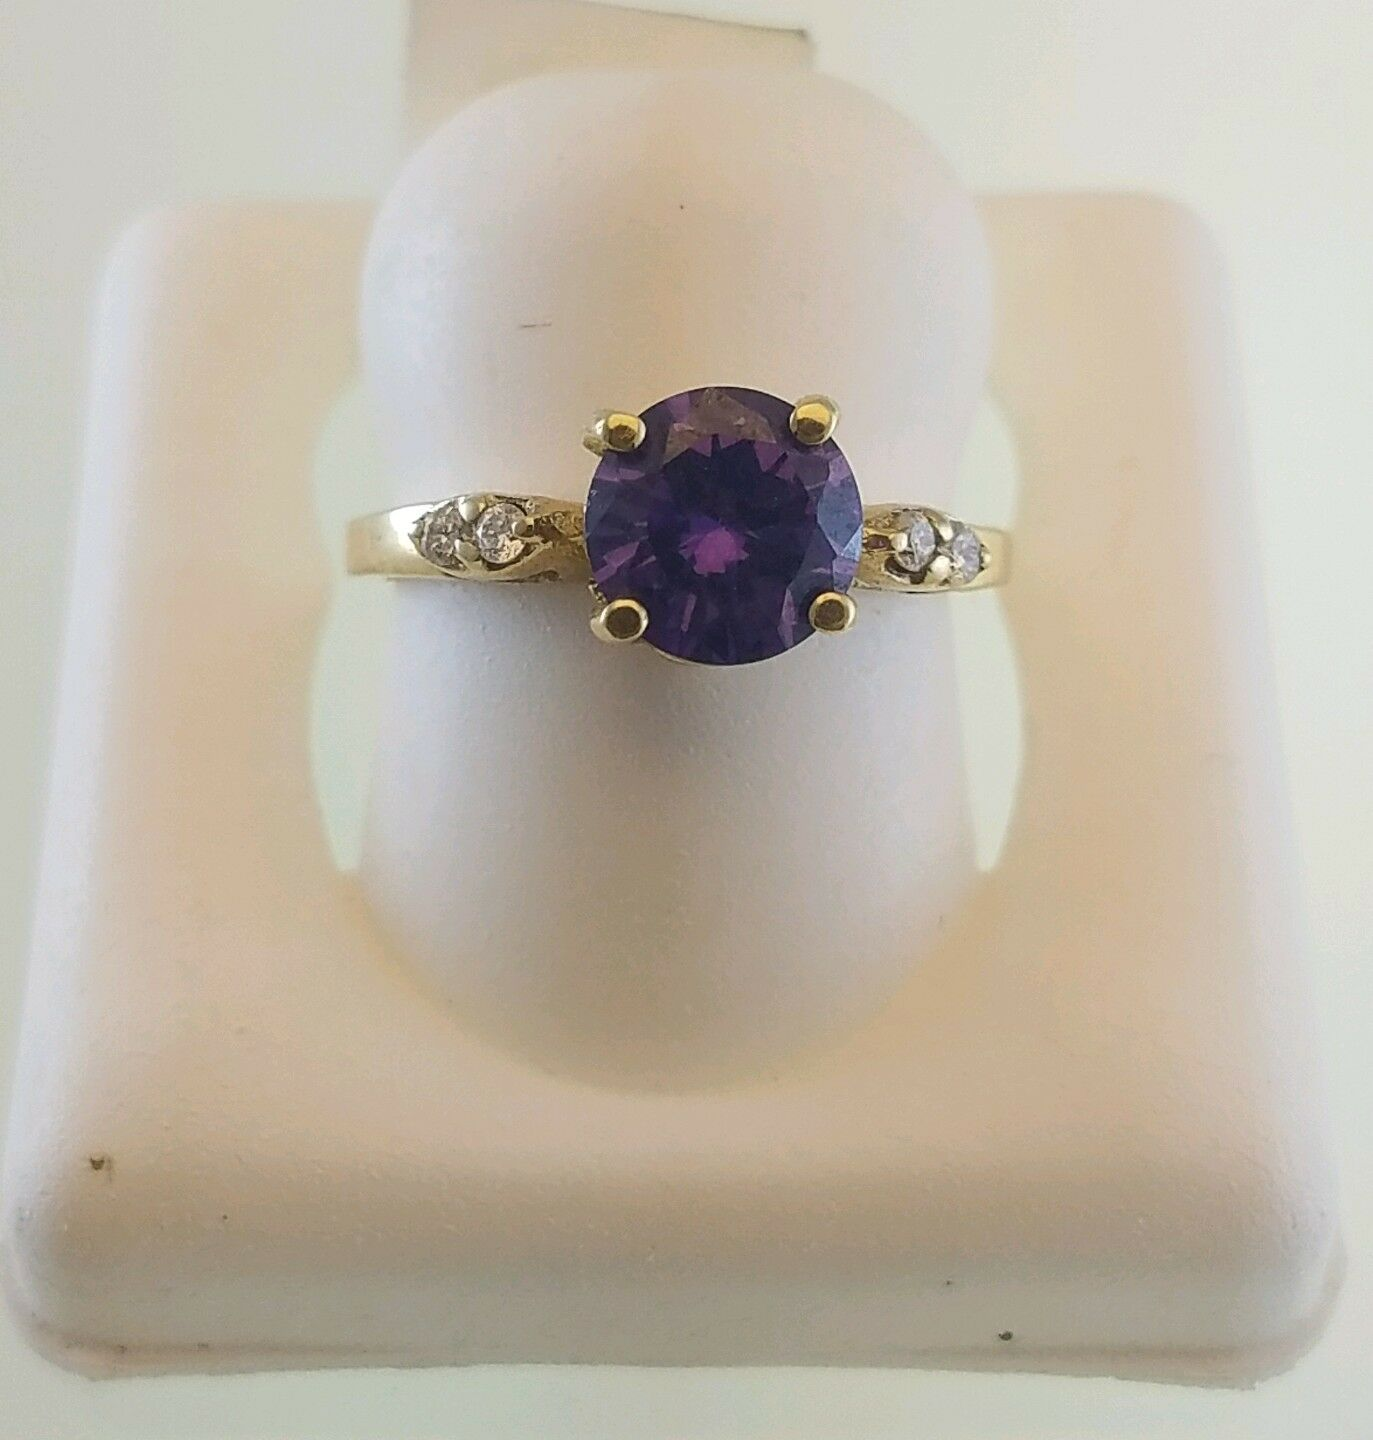 14KT YELLOW gold RING WITH purple CUBIC ZIRCONIAZ AND 4 WHITE CZ SWAROSKI